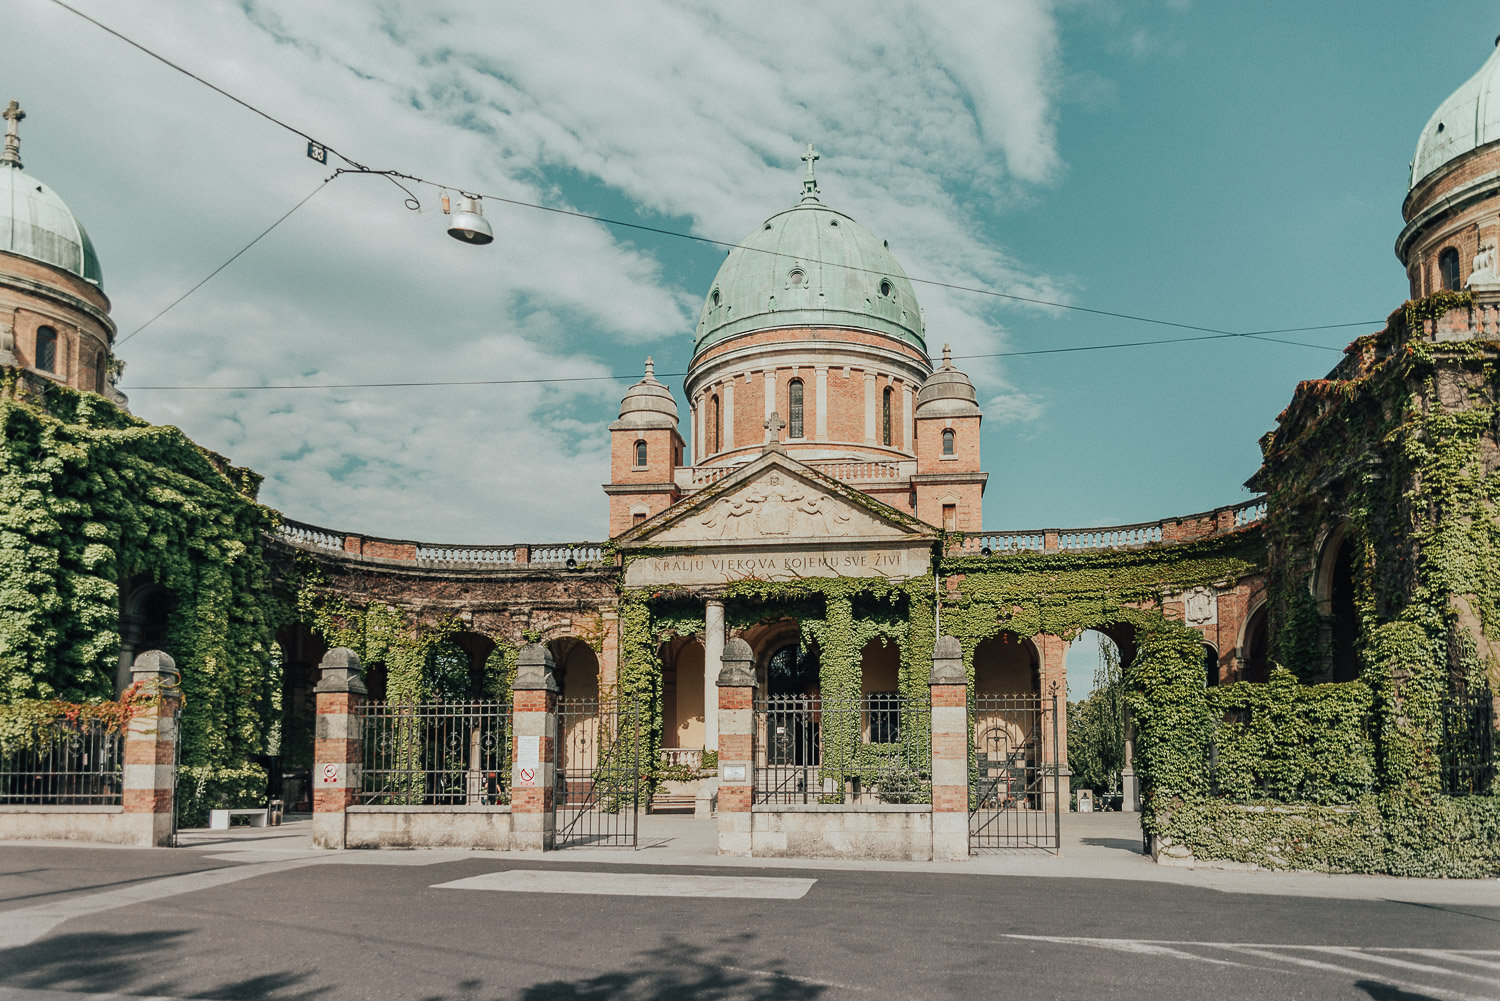 Things to do in Zagreb: See the stunning Mirogoj Cemetery